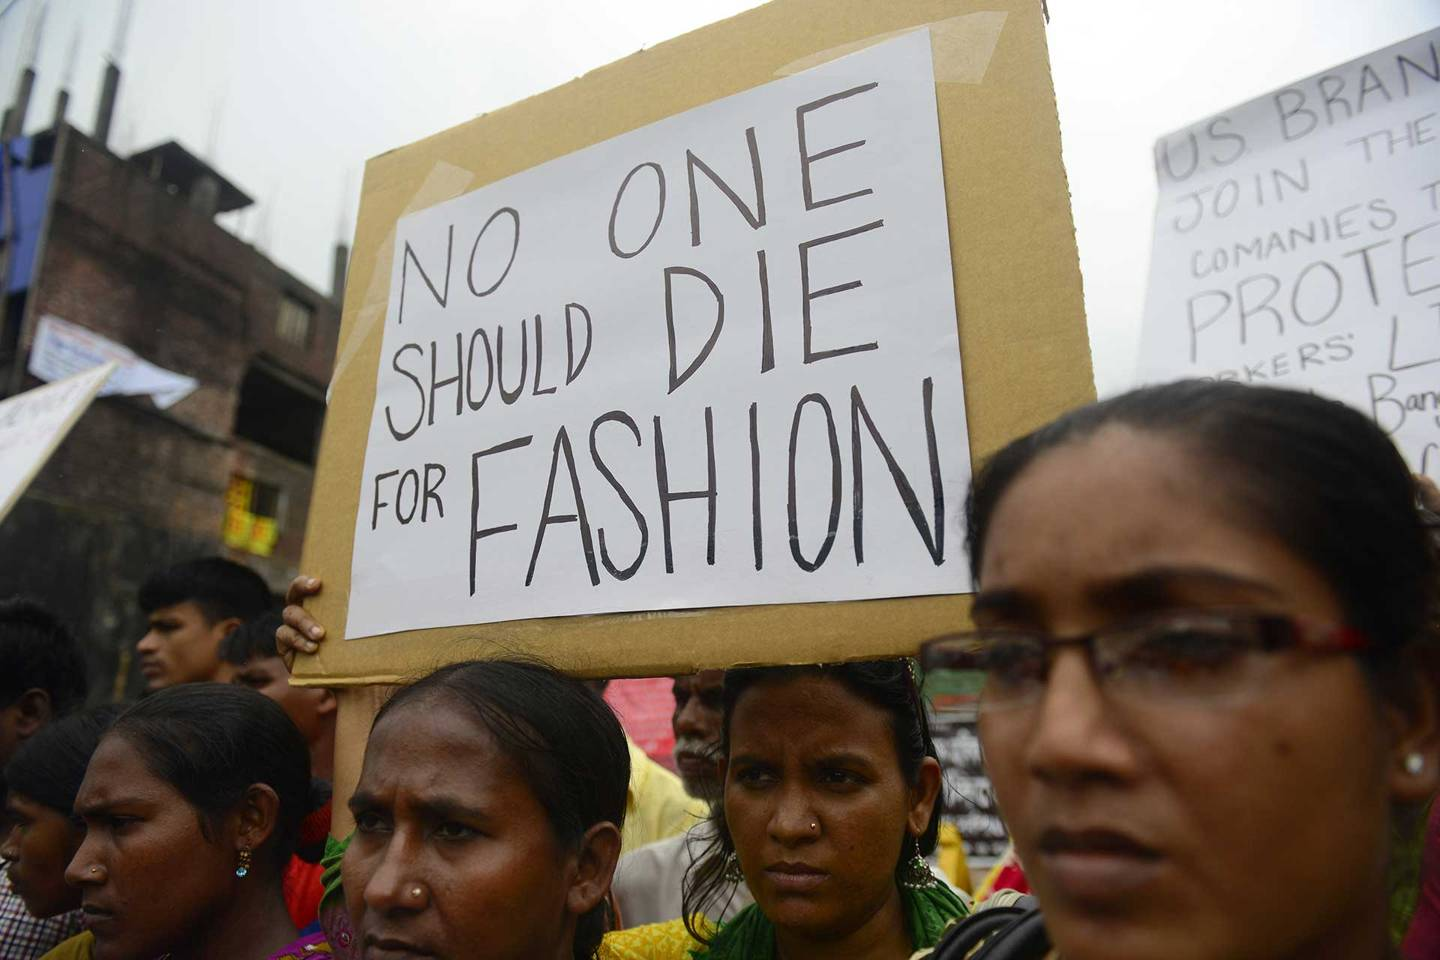 No one should die for fashion | Fashion revolution | Rana Plaza Collapse